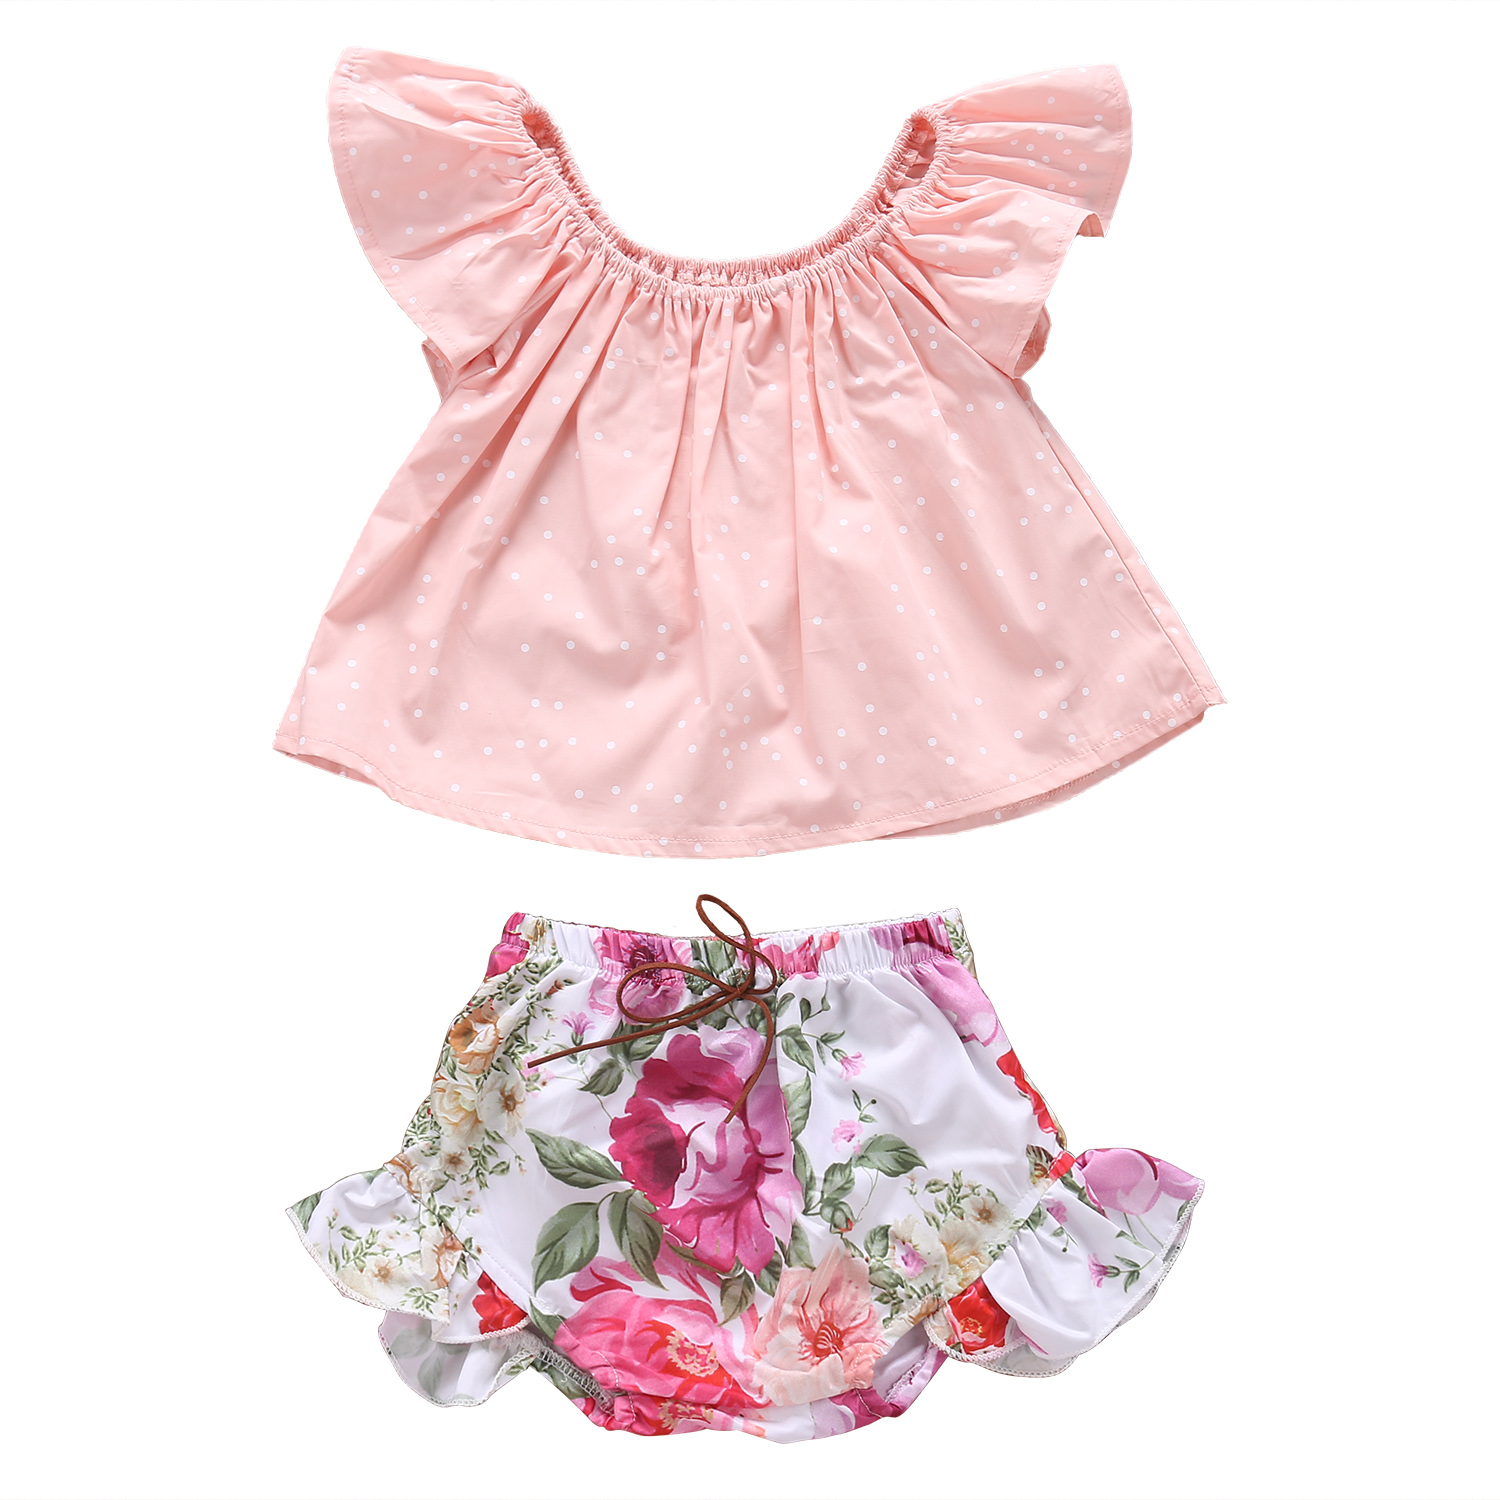 2PCS Toddler Kids Baby Girls Clothes T-shirt Vest Tops Shorts Flower Cute Outfits Clothing Set Baby Girl baby girls clothing set 2015 kids toddler t shirt tank tops skirt 2pcs set outfits clothes